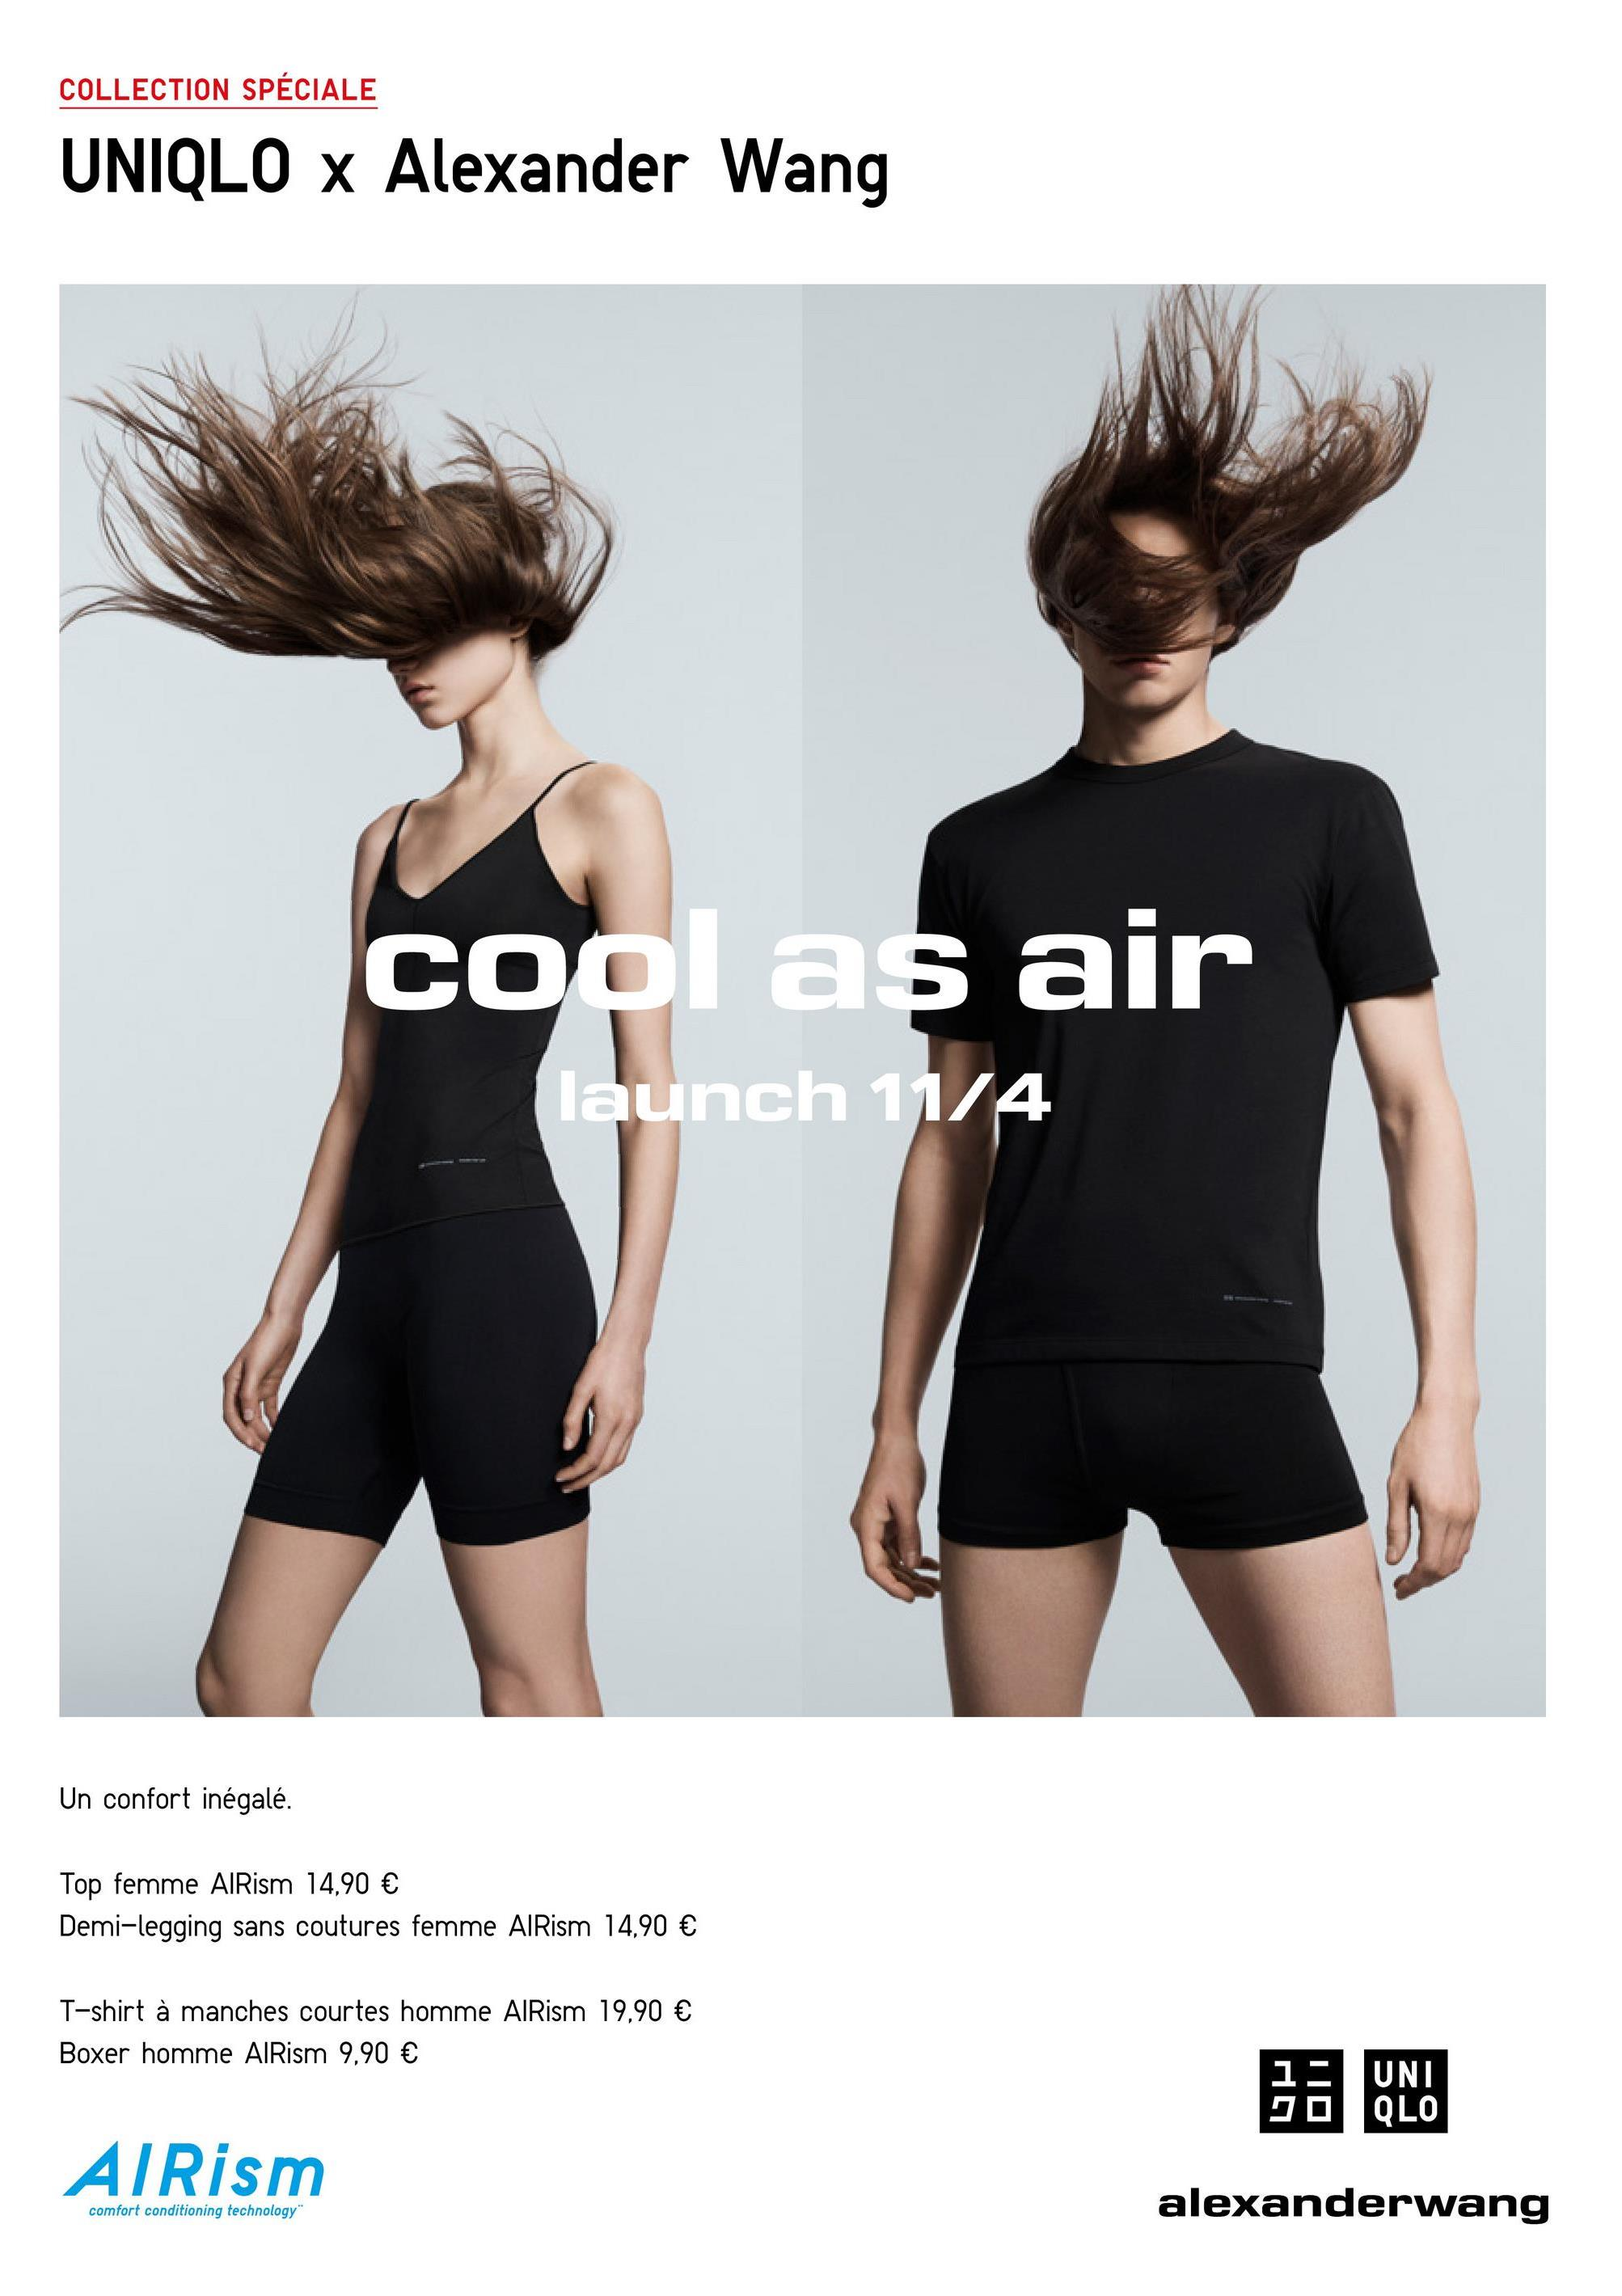 COLLECTION SPÉCIALE UNIQLO x Alexander Wang cool as air launch 11/4 Un confort inégalé. Top femme AlRism 14,90 € Demi-legging sans coutures femme AlRism 14,90 € 19,90 € T-shirt à manches courtes homme AlRism Boxer homme AlRism 9,90 € NO AIRism alexanderwang comfort conditioning technology